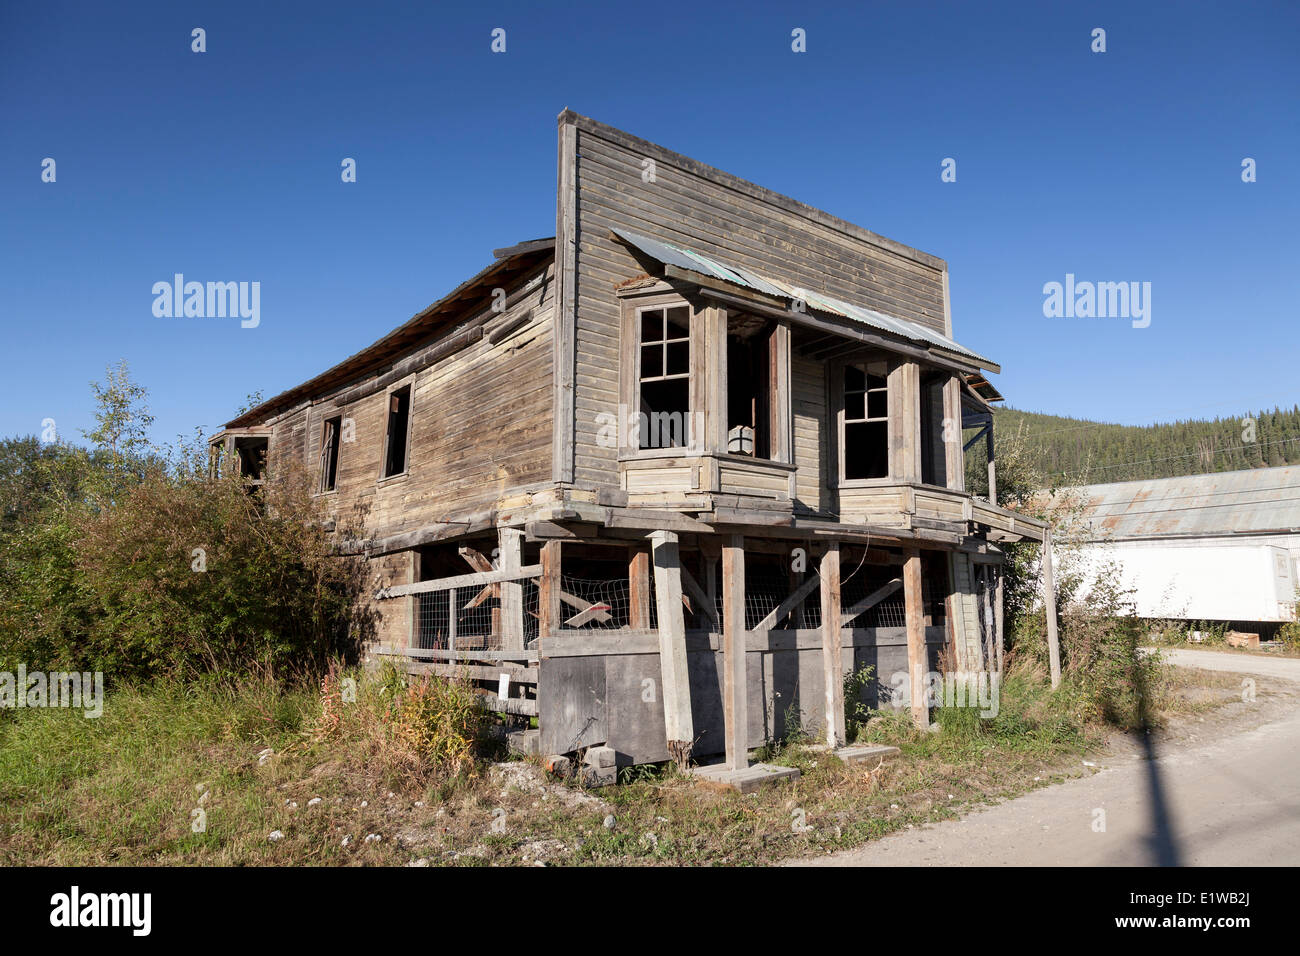 Strait 39 s auction house an old false front building on the for Homes built on your land with no money down